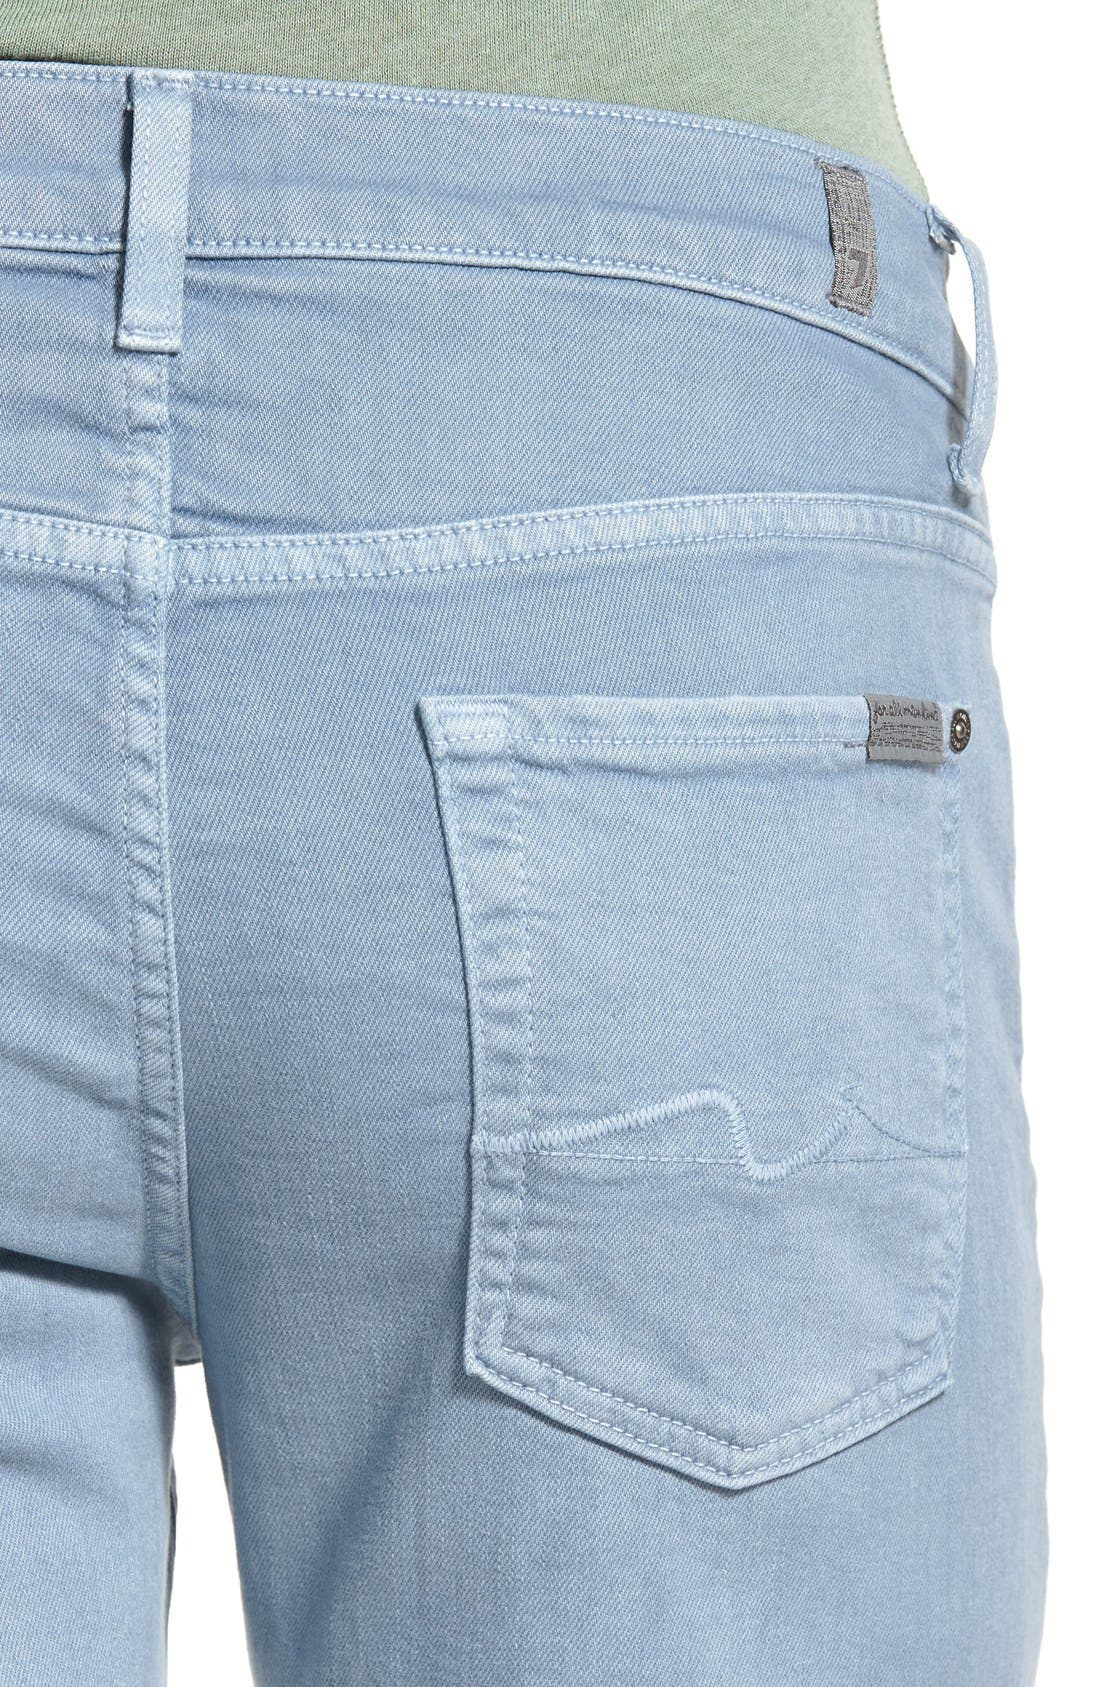 'Slimmy - Luxe Performance' Slim Fit Jeans,                             Alternate thumbnail 32, color,